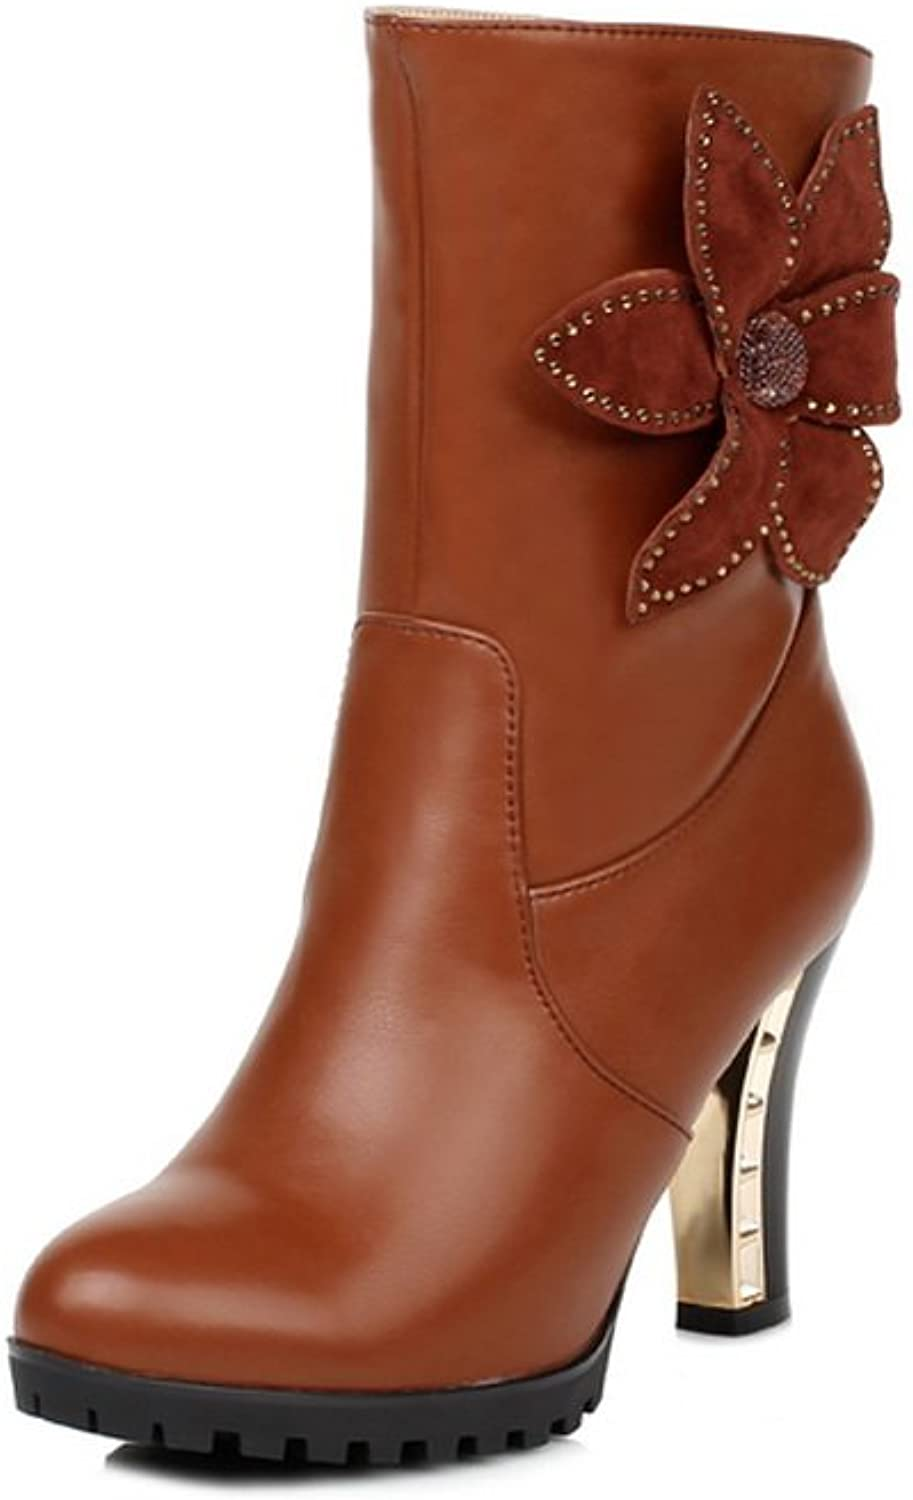 Queenfashion Women's High Chunky Heels Combat Boots with Flowers